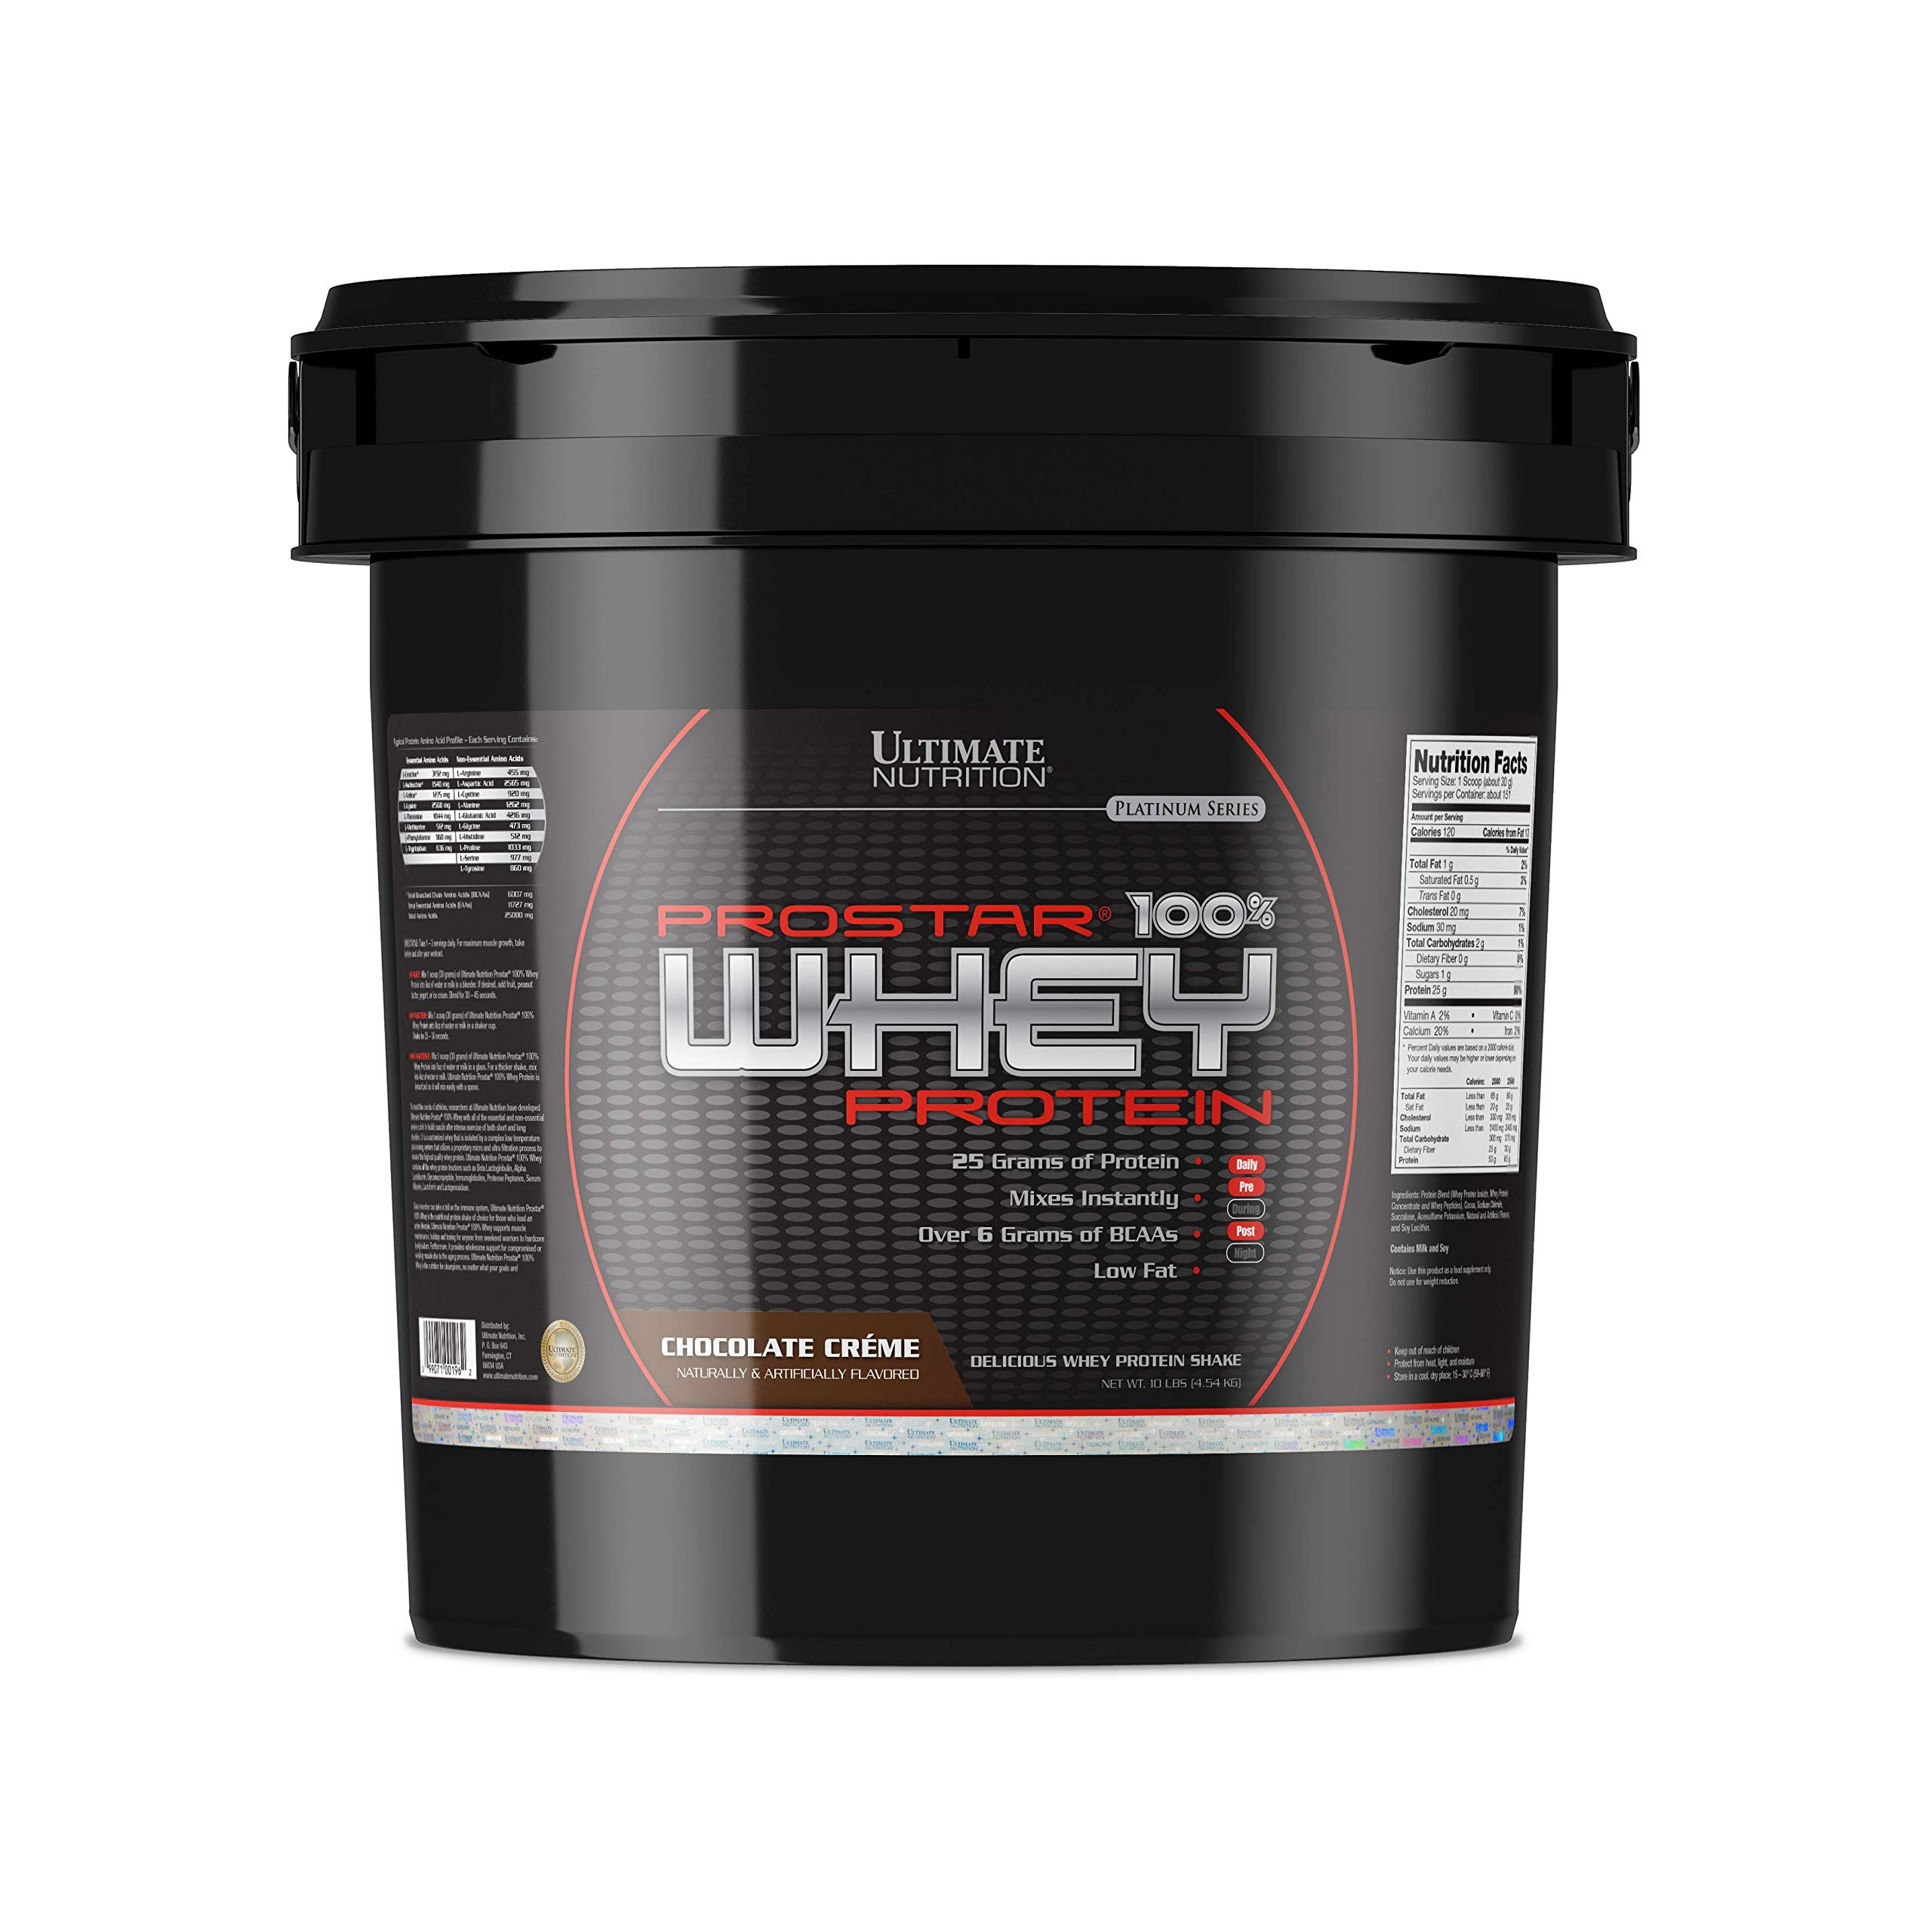 Ultimate Nutrition PROSTAR Whey Protein Powder - 20% More Servings - 25 Grams of Protein and 6g BCAAs - Low Carb, Keto Friendly, Chocolate Crème, 10 Pounds